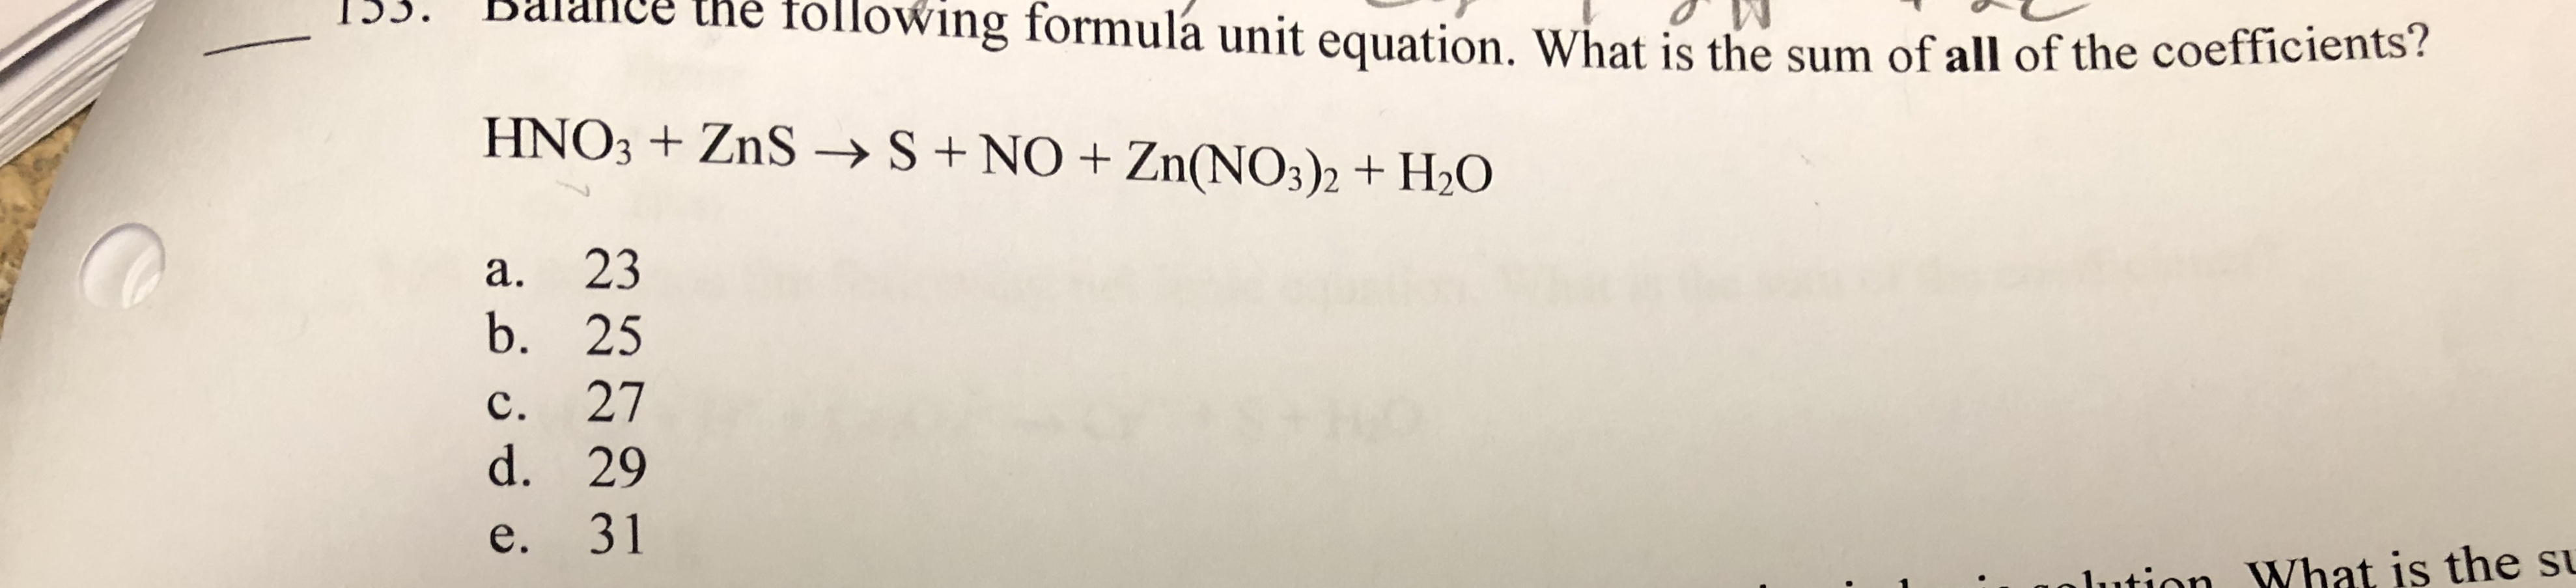 I.S. B he tollowing formulá unit equation. What is the sum of all of the coefficients? HNO3 ZnS- S+ NO Zn(NOs)2 + 20 a. 23 b. 25 c. 27 d. 29 e. 31 ution What is the s